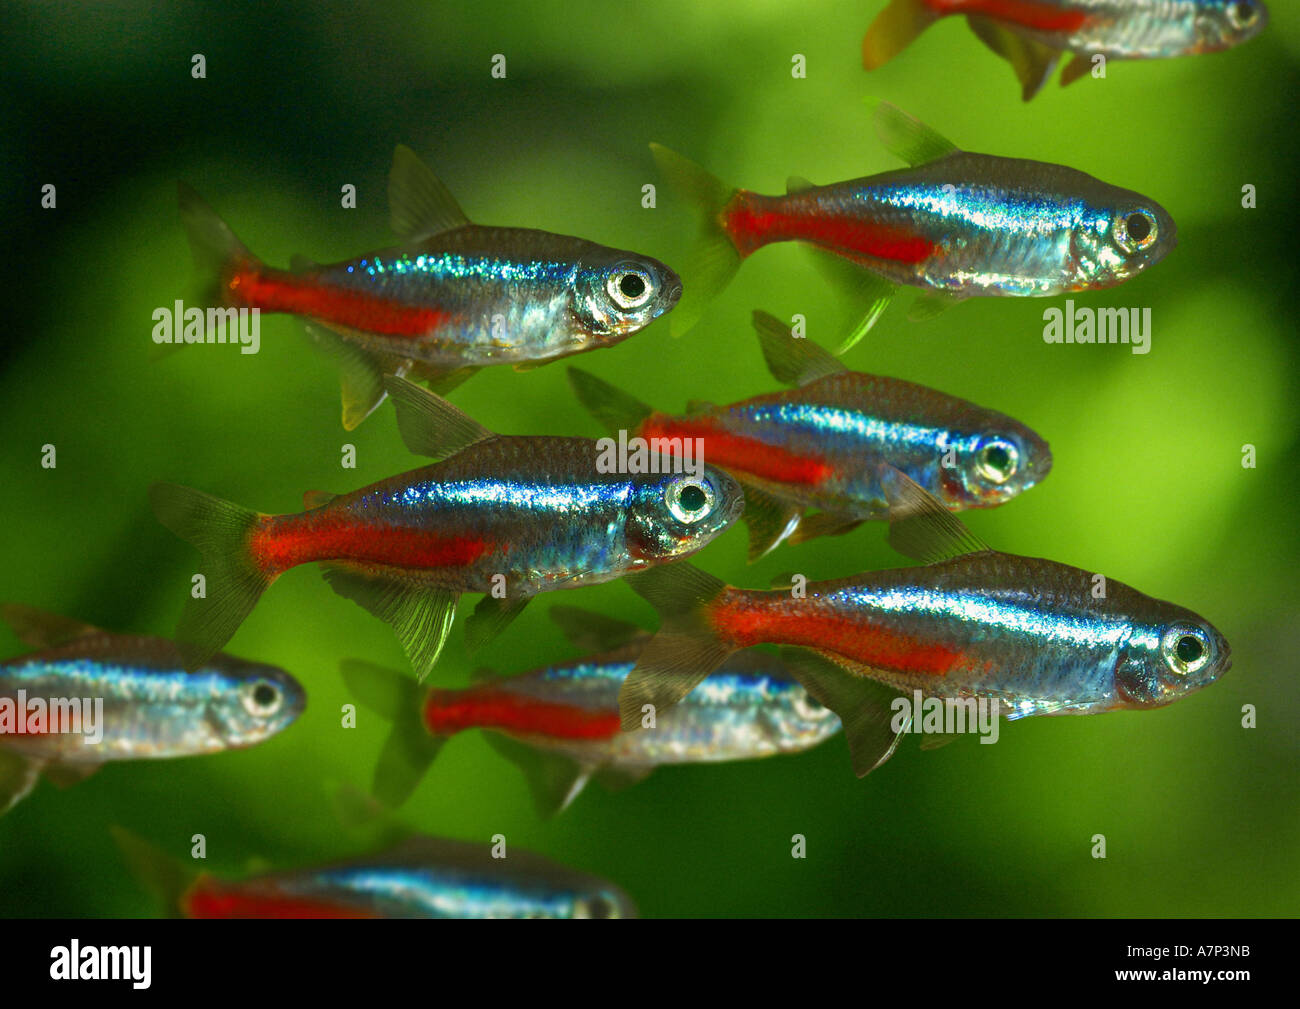 how to take care of neon tetras